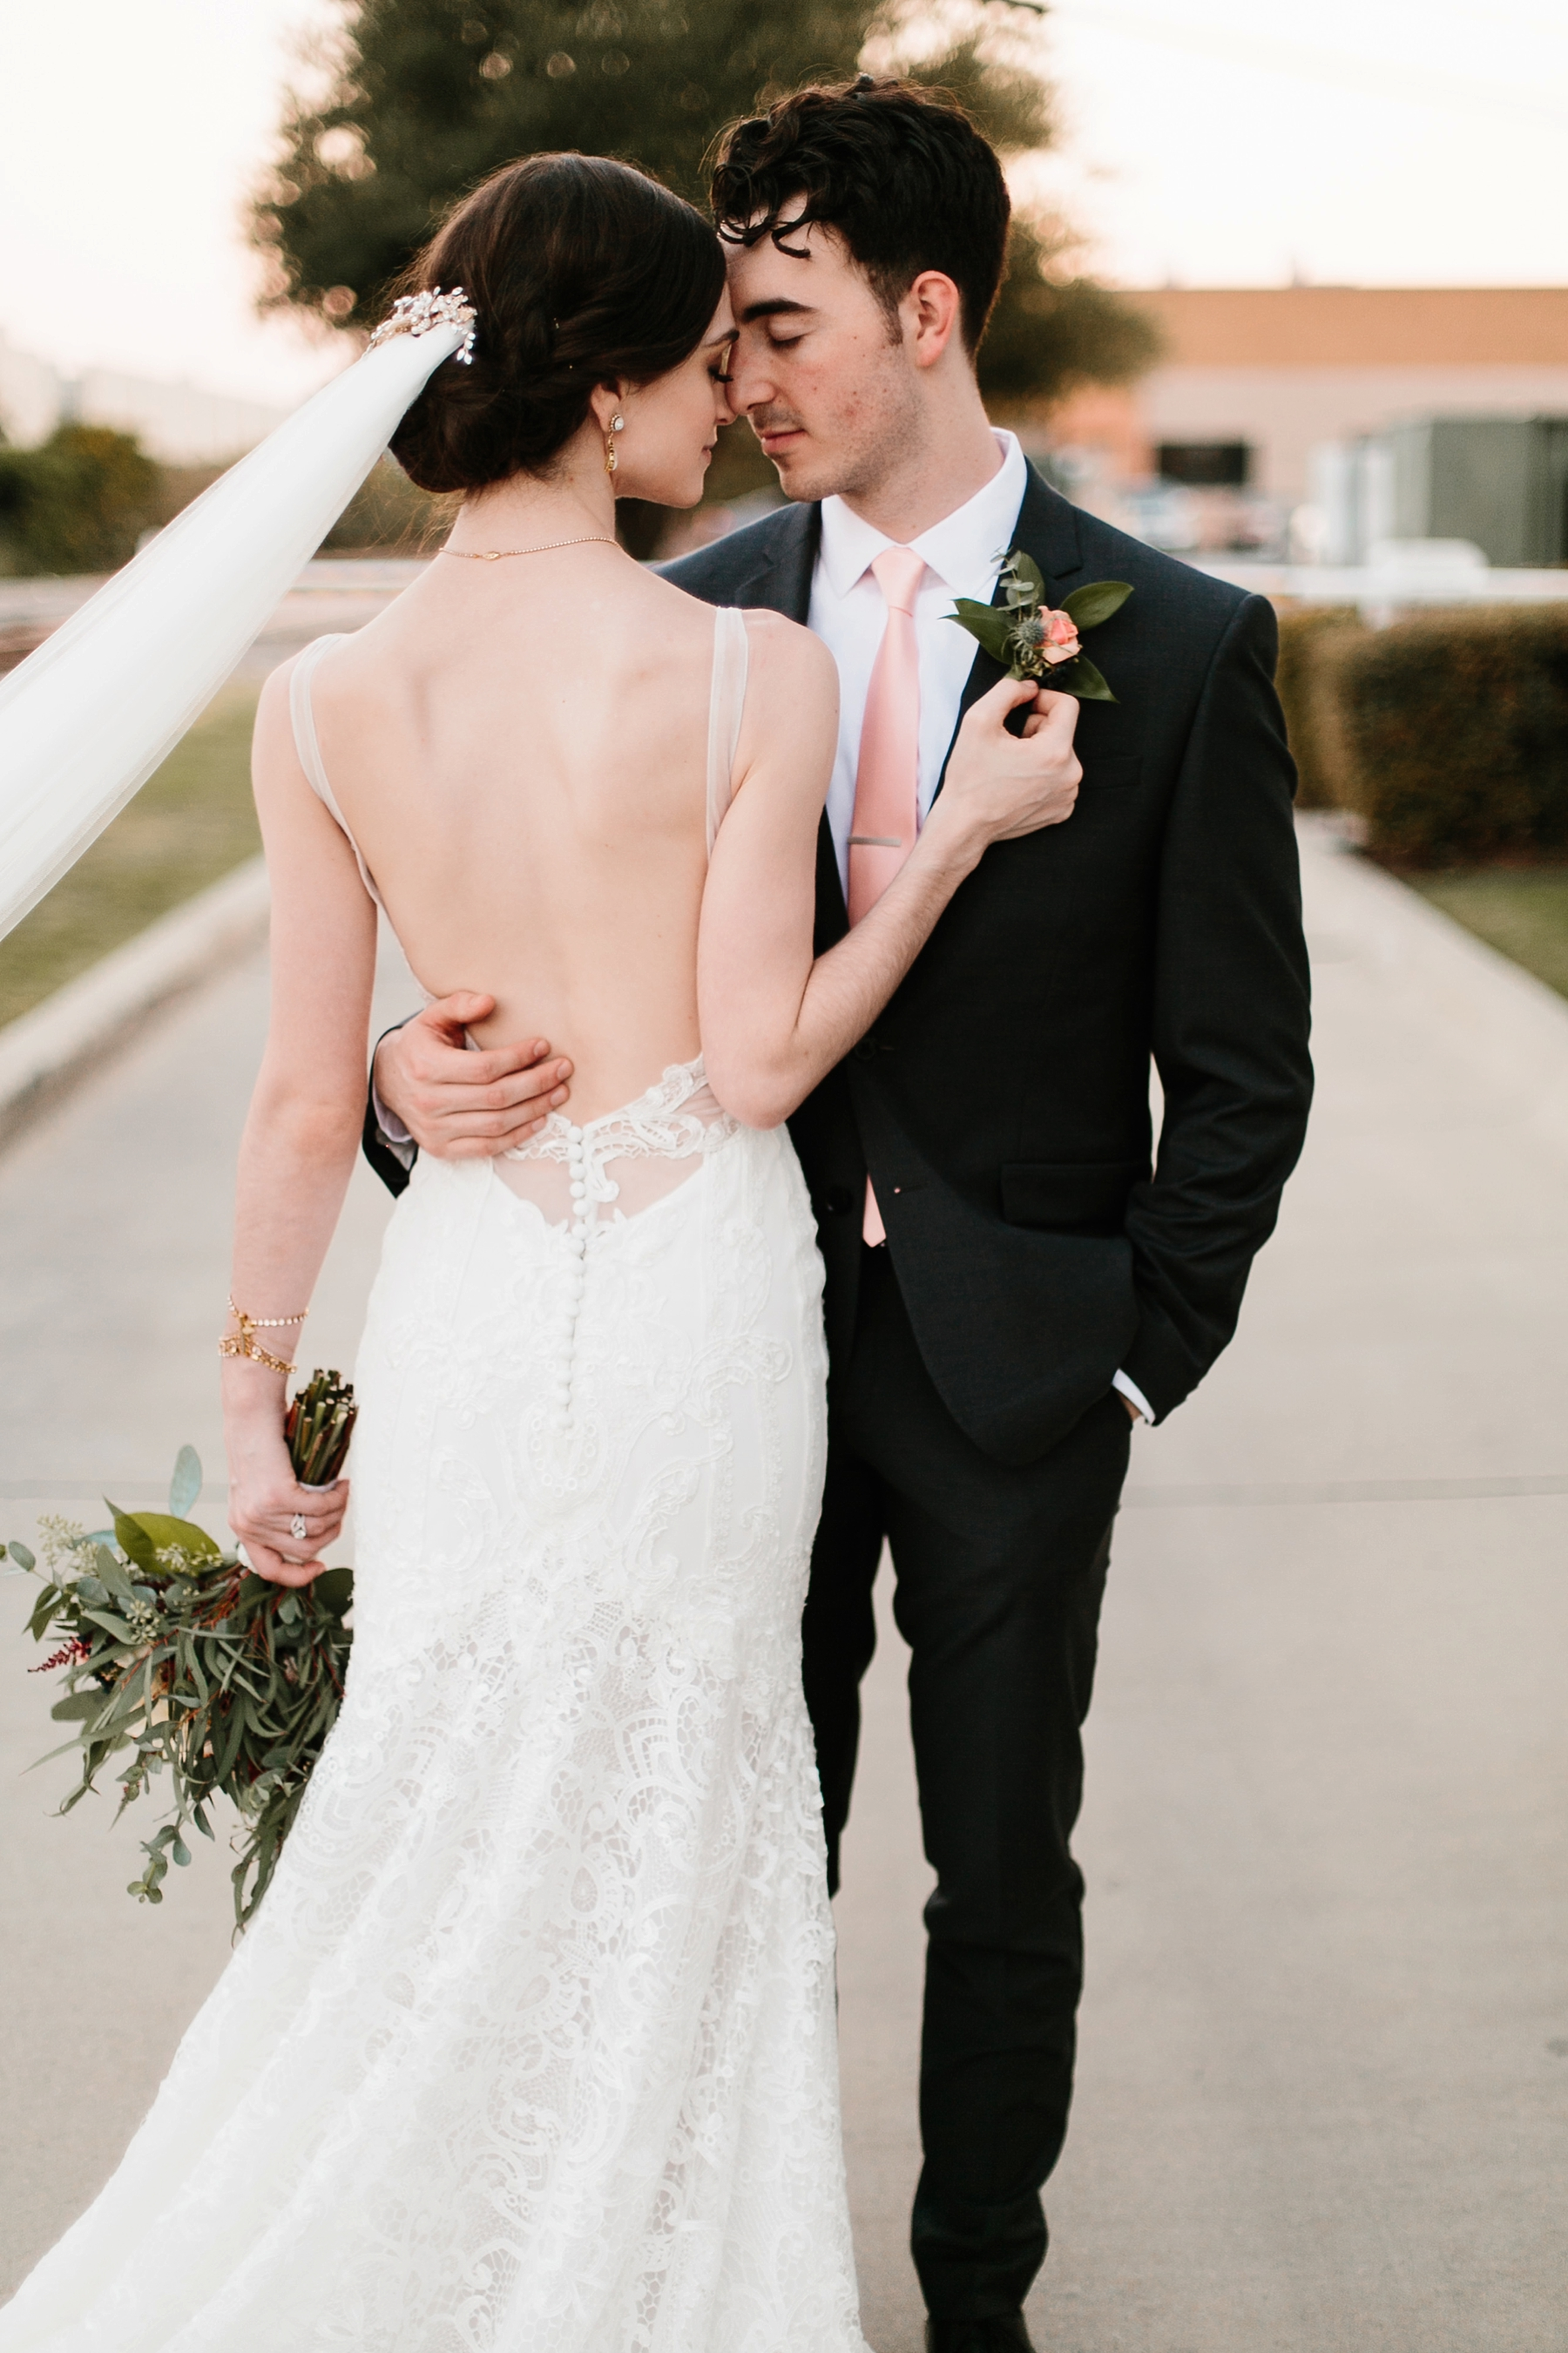 Emily + Caleb _ an elegant, intentional, industrial style wedding with navy + gold accents at 6500 in Dallas, TX by North Texas Wedding Photographer Rachel Meagan Photography _ 127